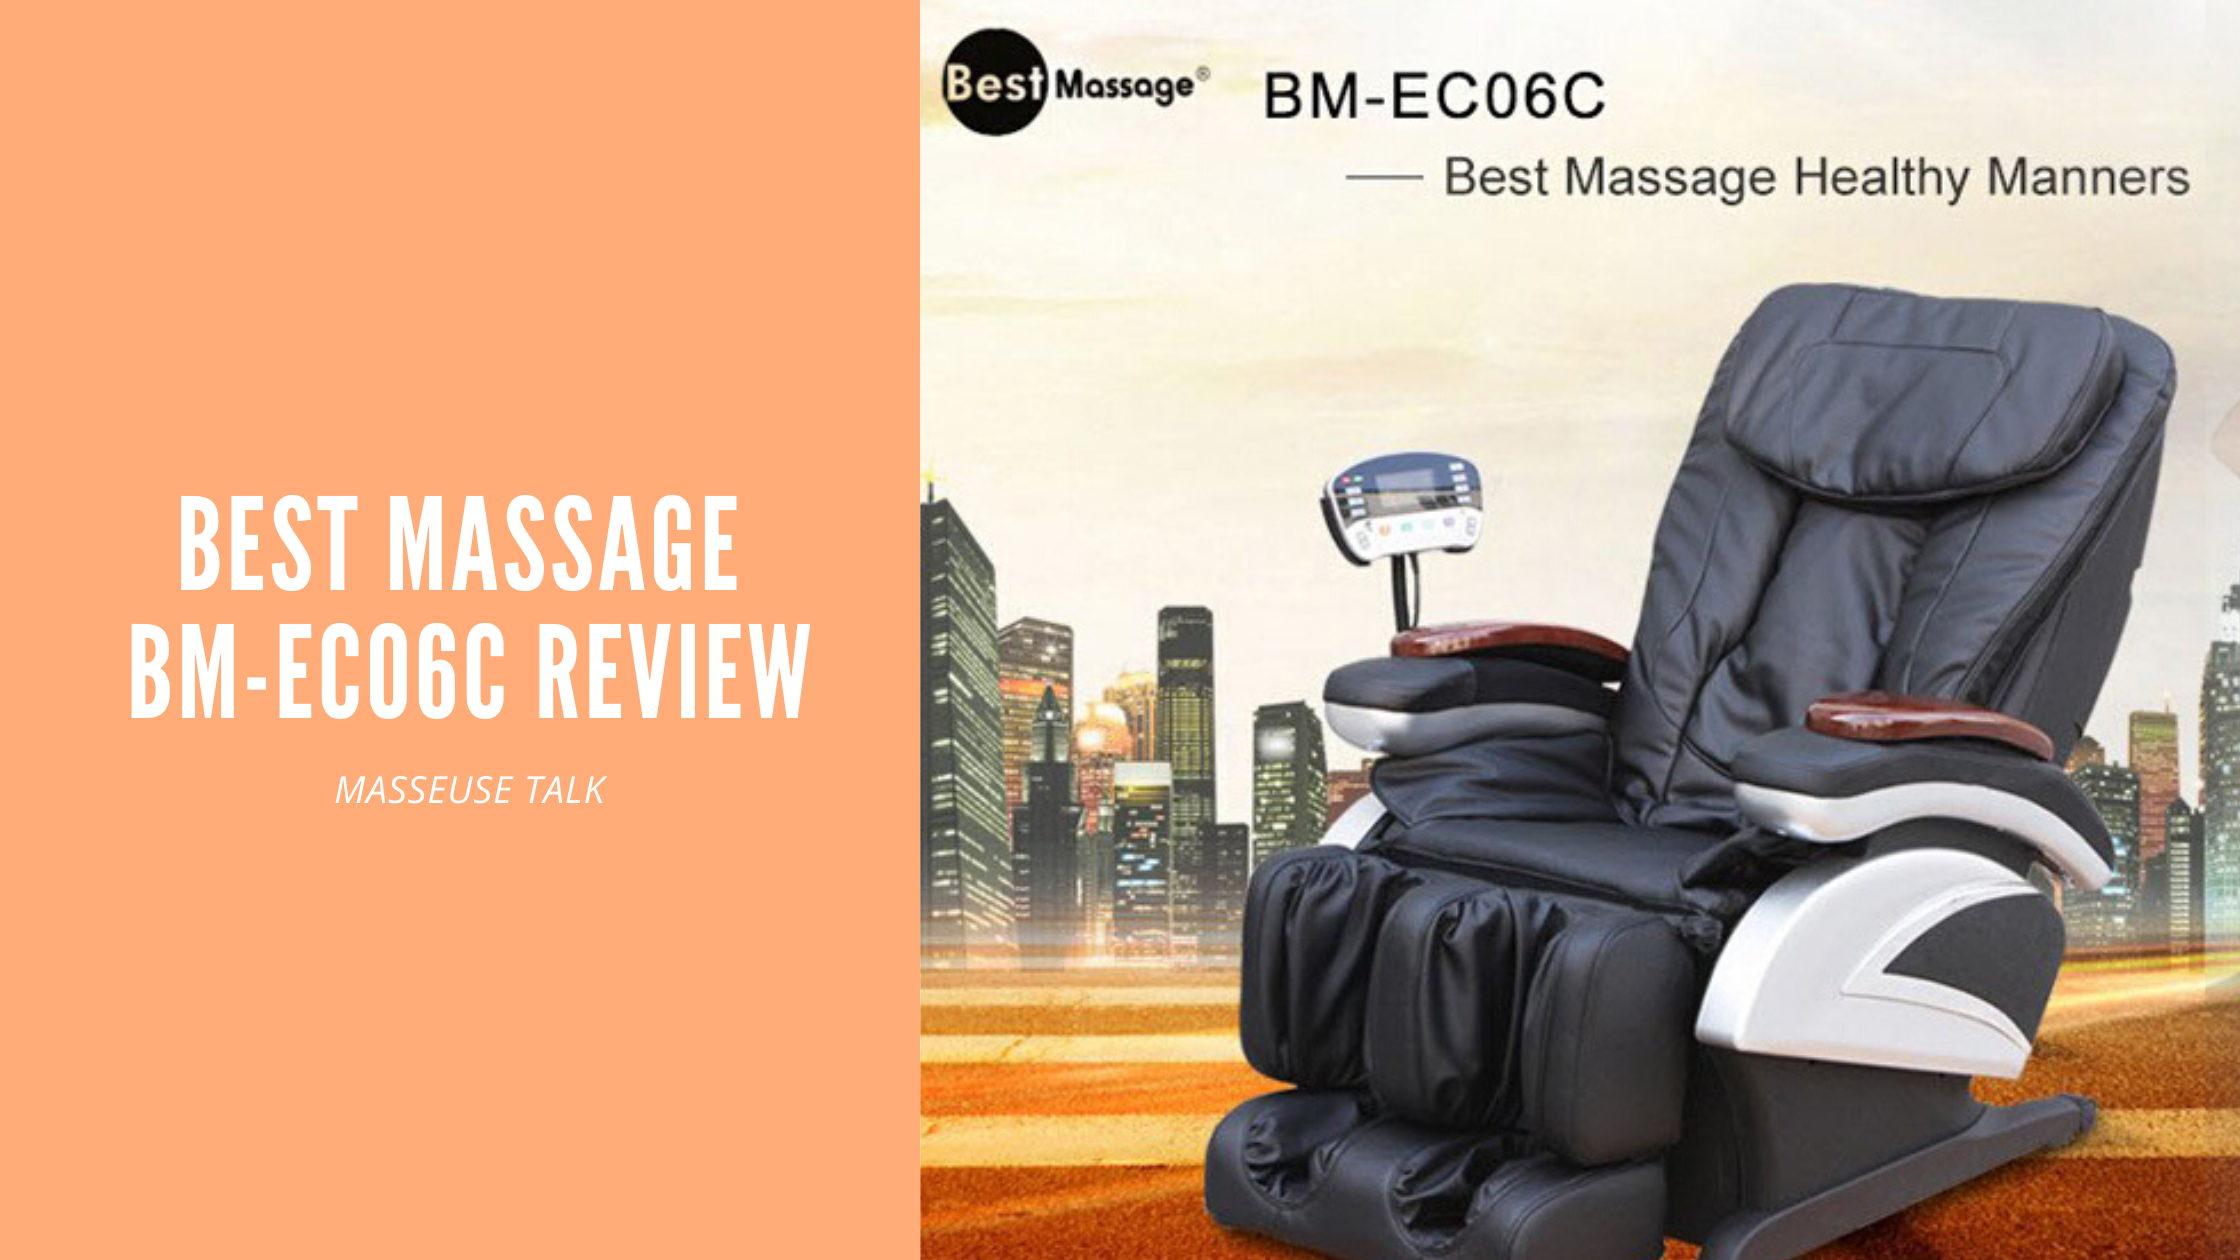 best massage bm-ec06c review